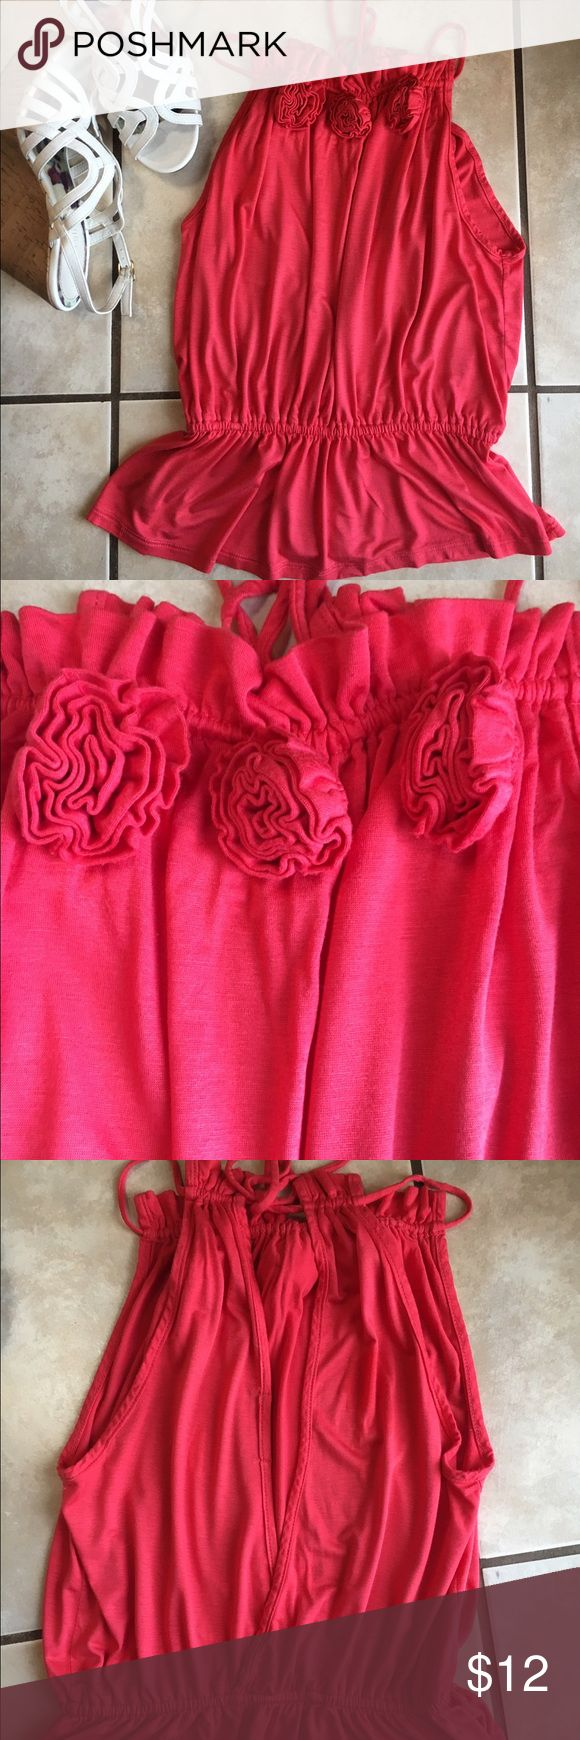 Adorable Open-Back Boutique Rosette Top I SHIP SAME OR NEXT DAY!! Worn once, ties behind neck, embellished with rosettes at neck, flattering fit, bought at boutique Tops Blouses